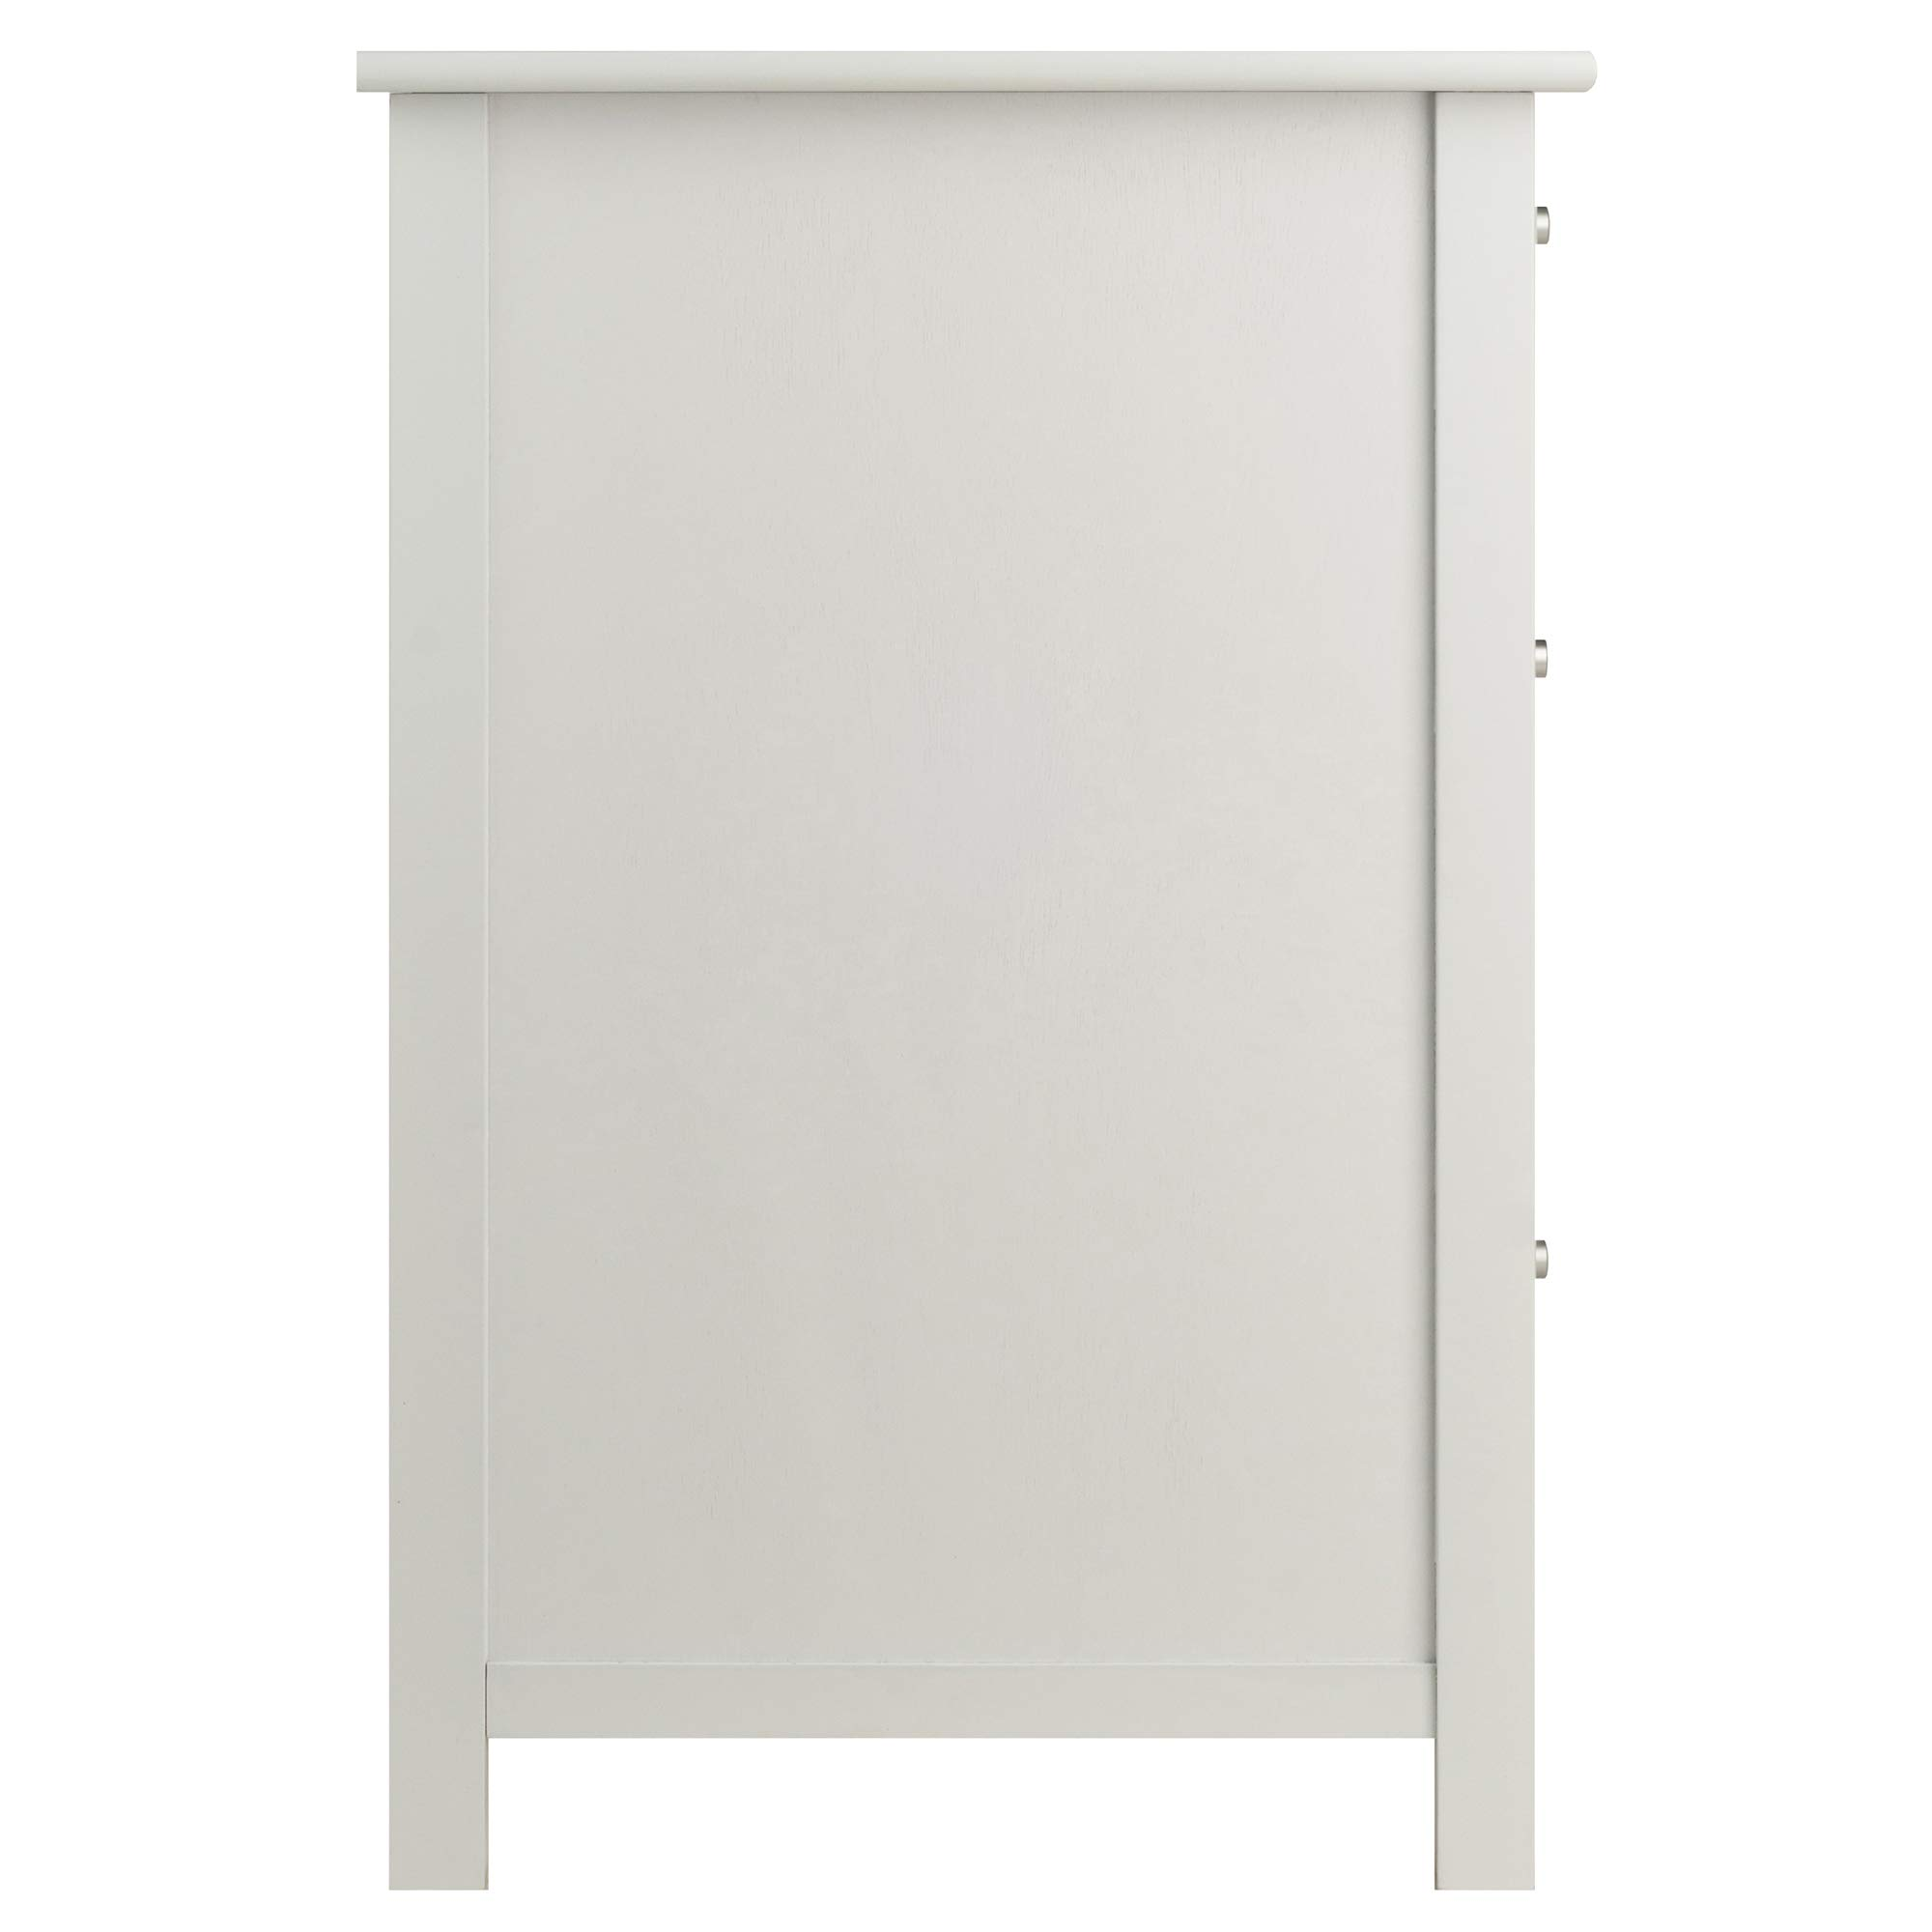 Winsome Wood 10321 Delta File Cabinet White Home Office, by Winsome Wood (Image #5)